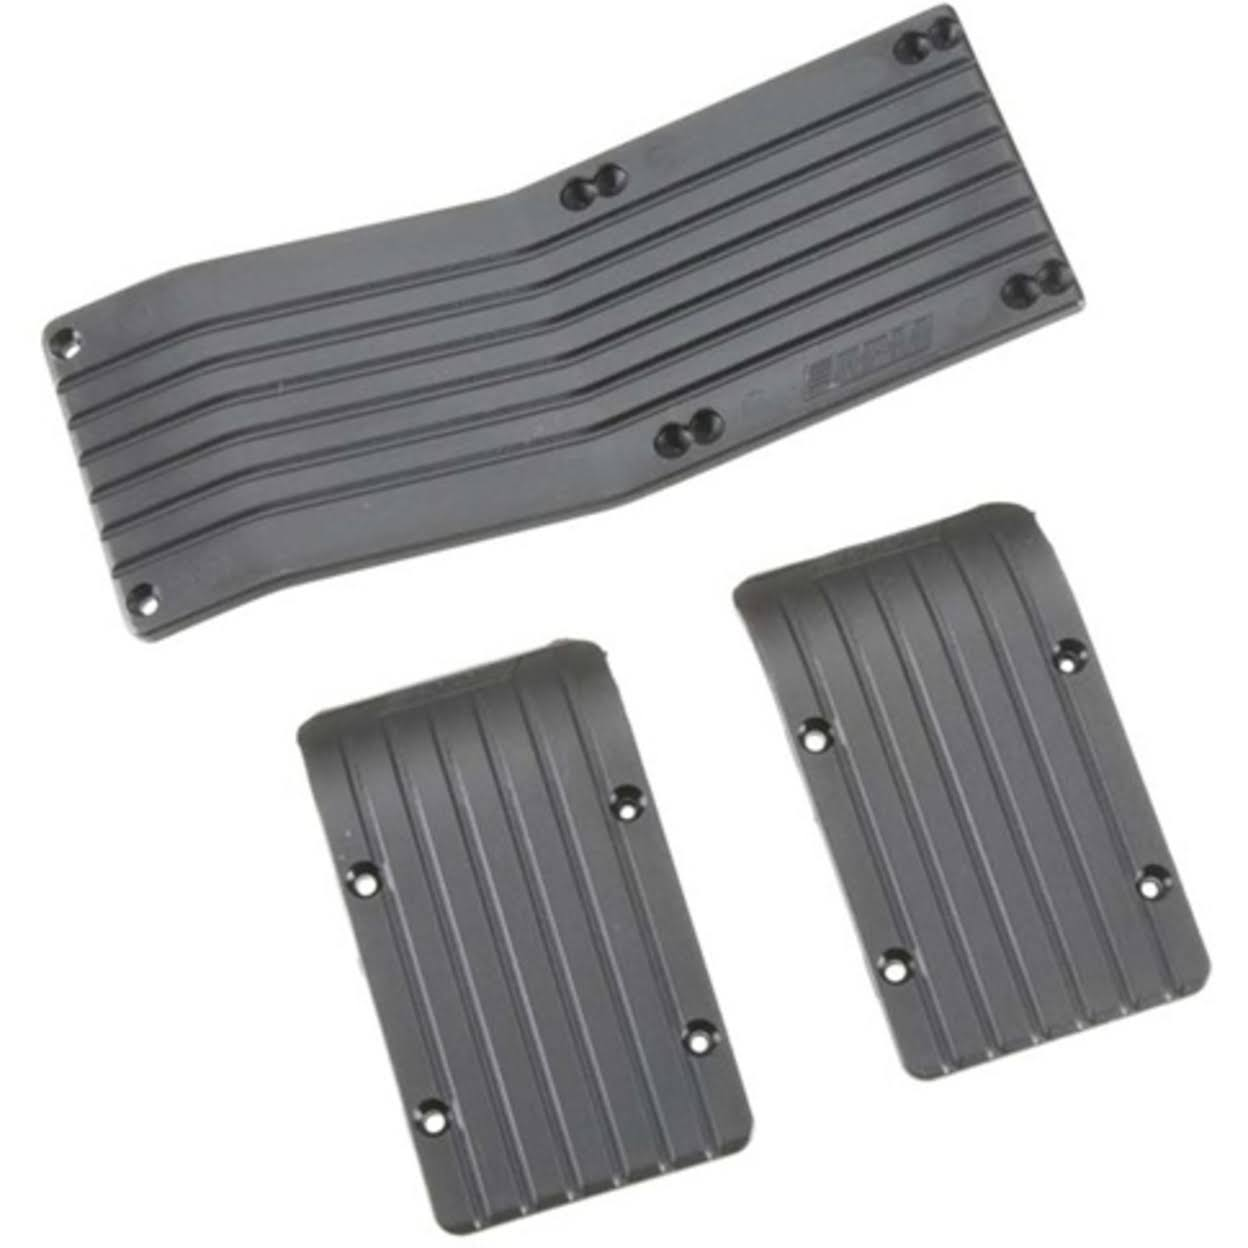 Rpm 80772 Skid Plate Set - Black, x3